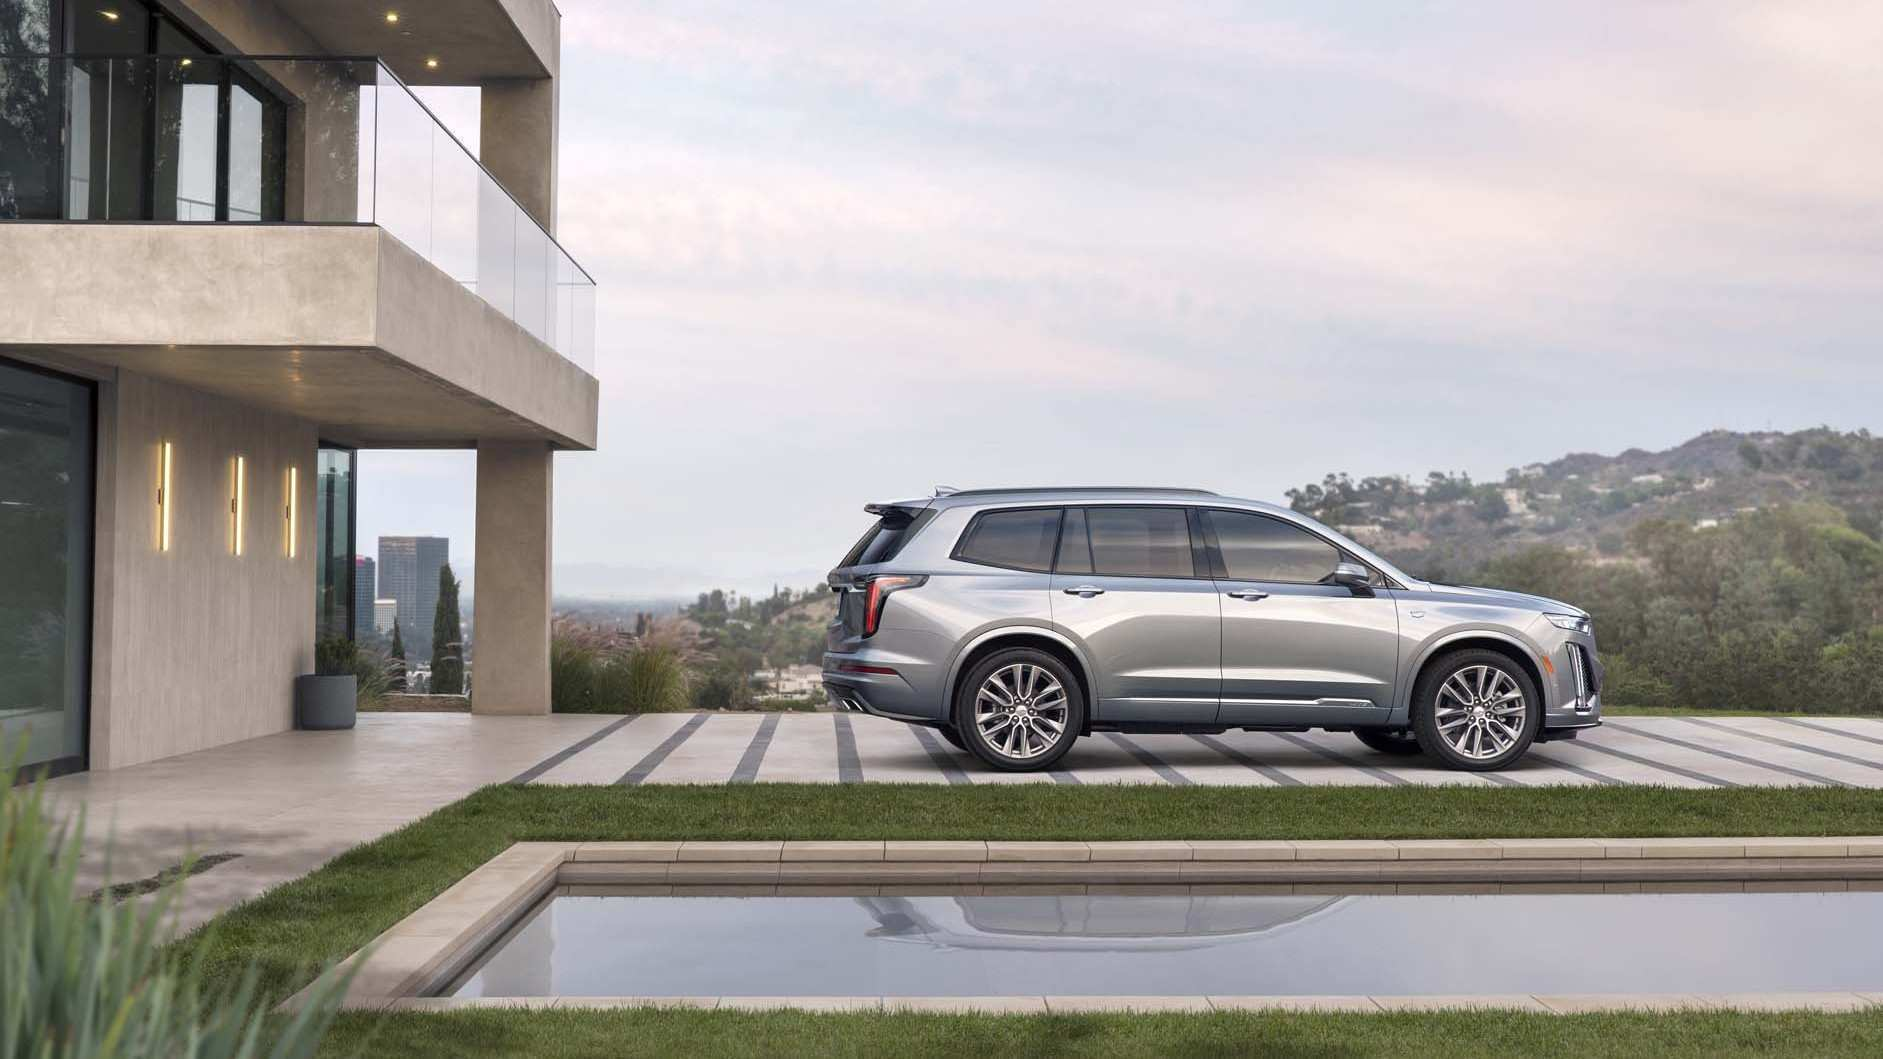 68 New 2020 Cadillac Xt6 Msrp Prices